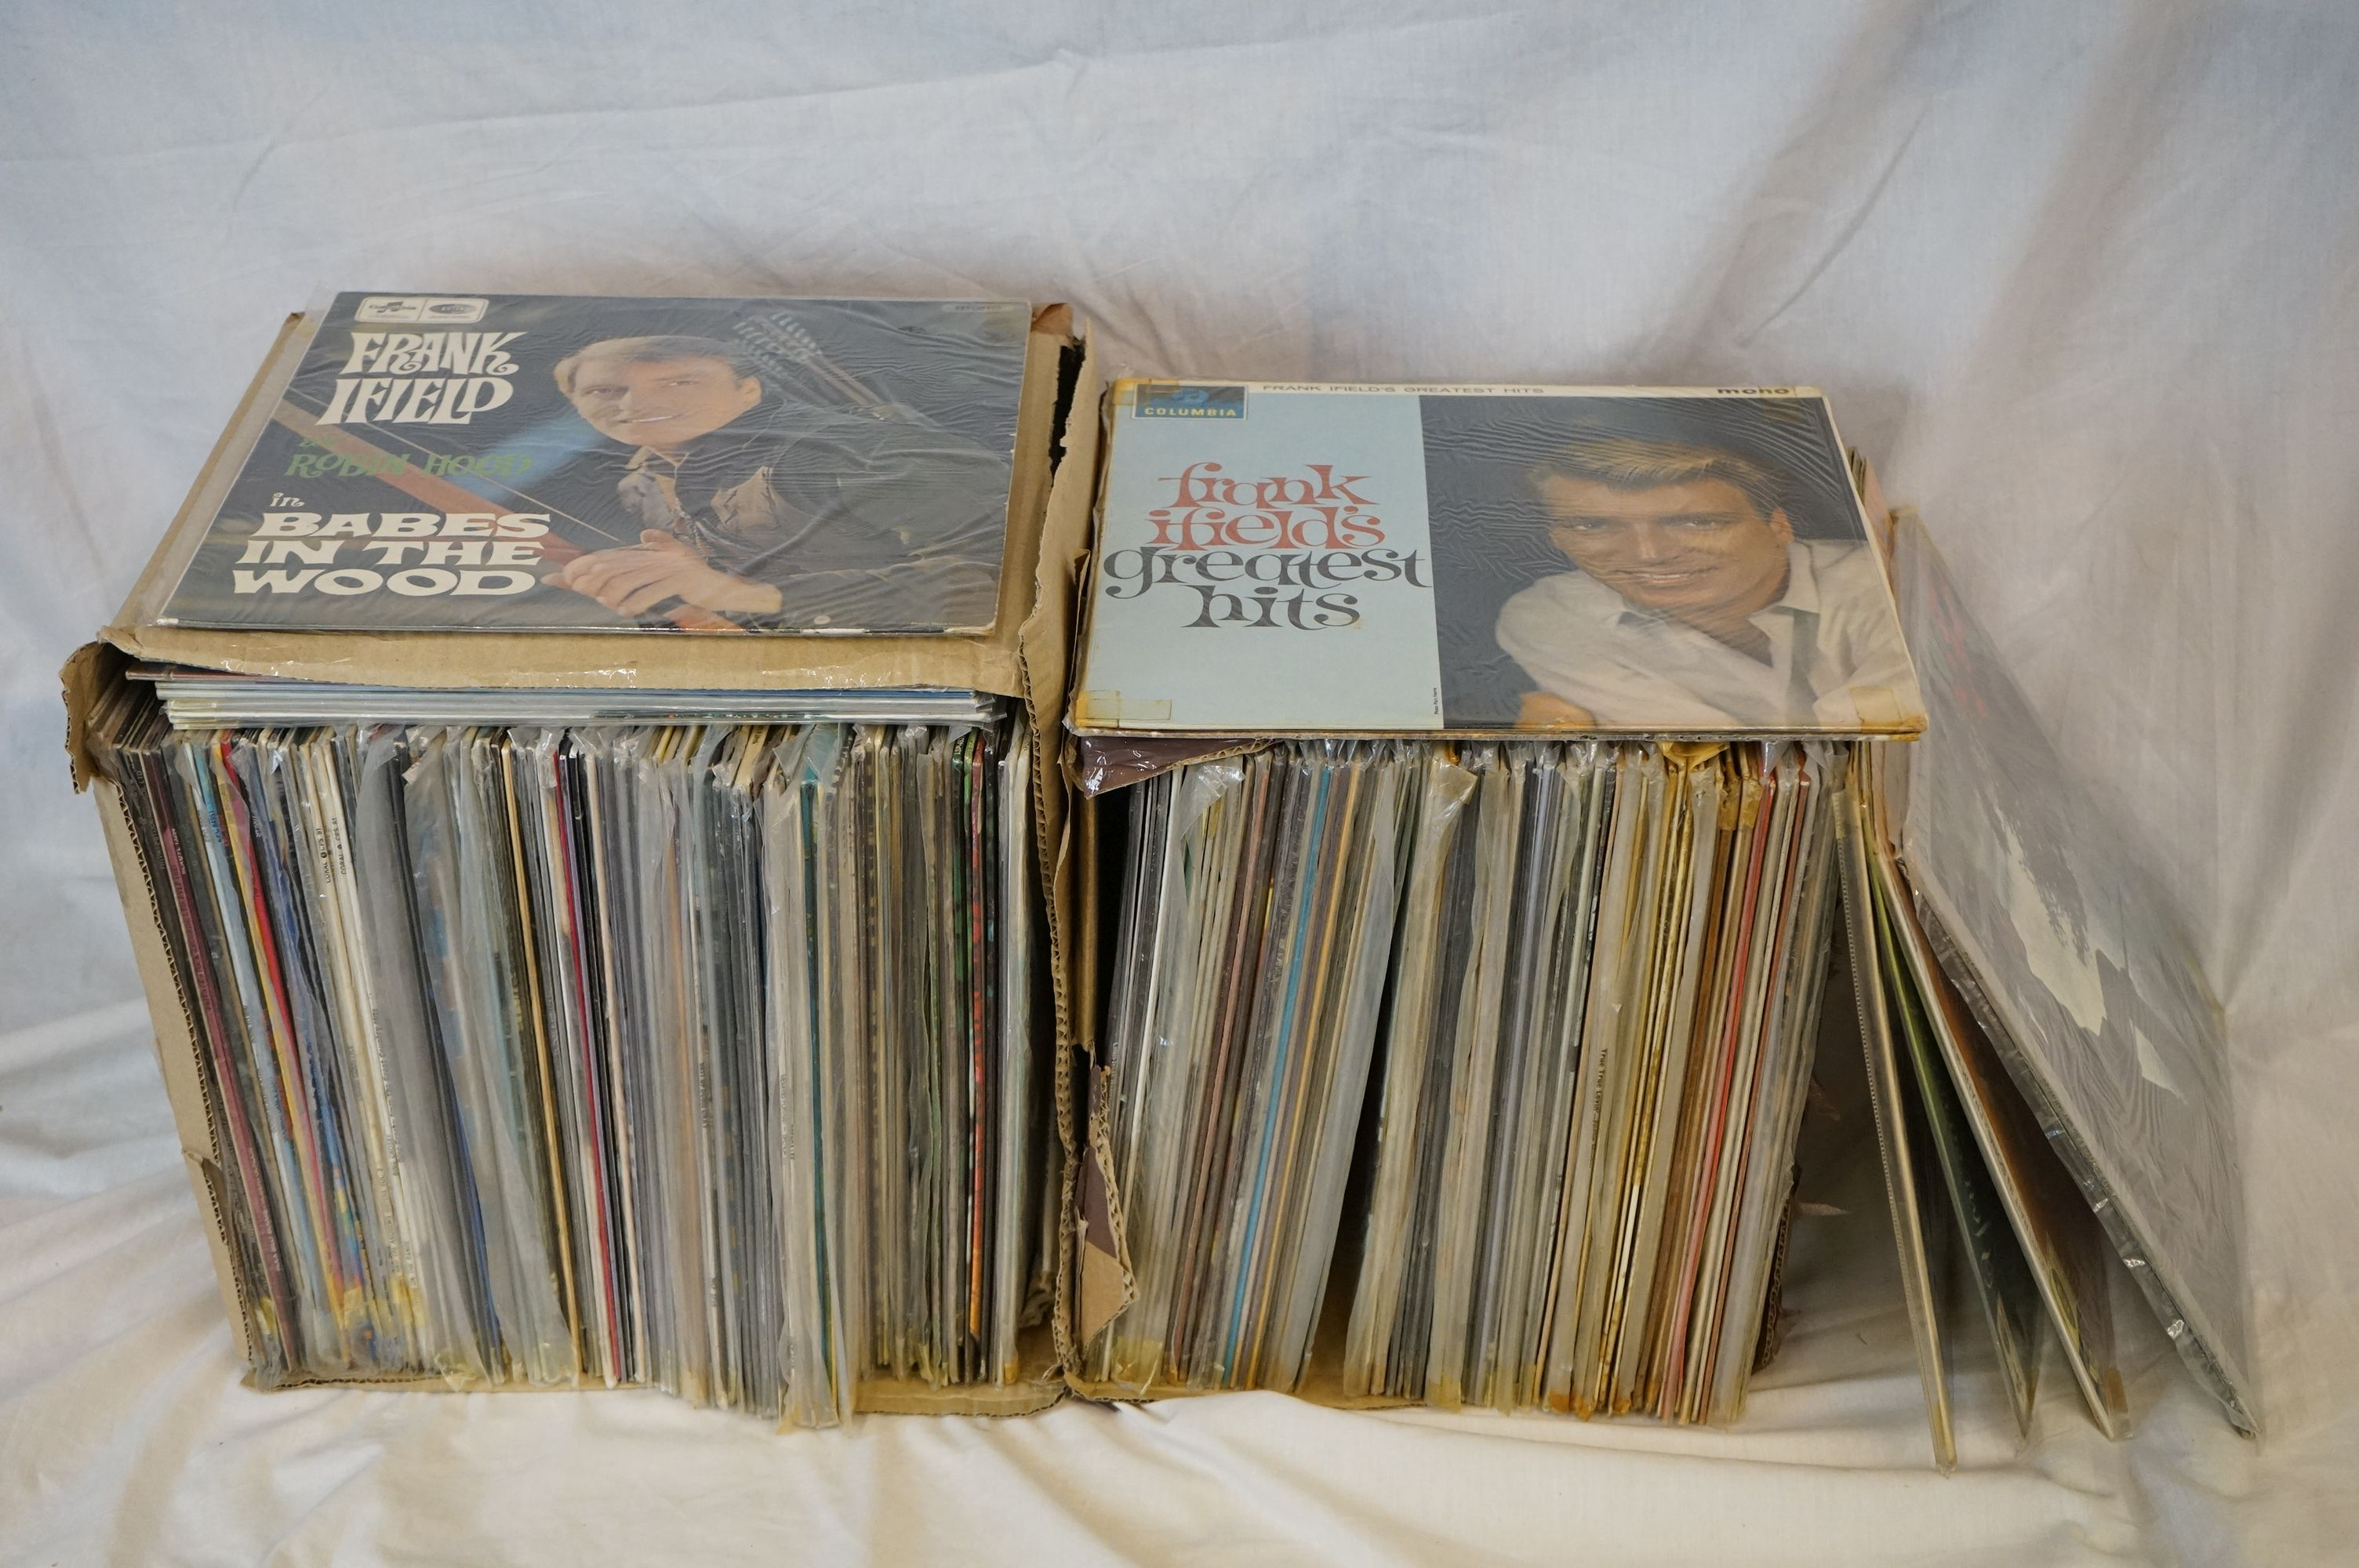 Vinyl - Over 100 LP's spanning genres and decades including lots of country artists. Condition